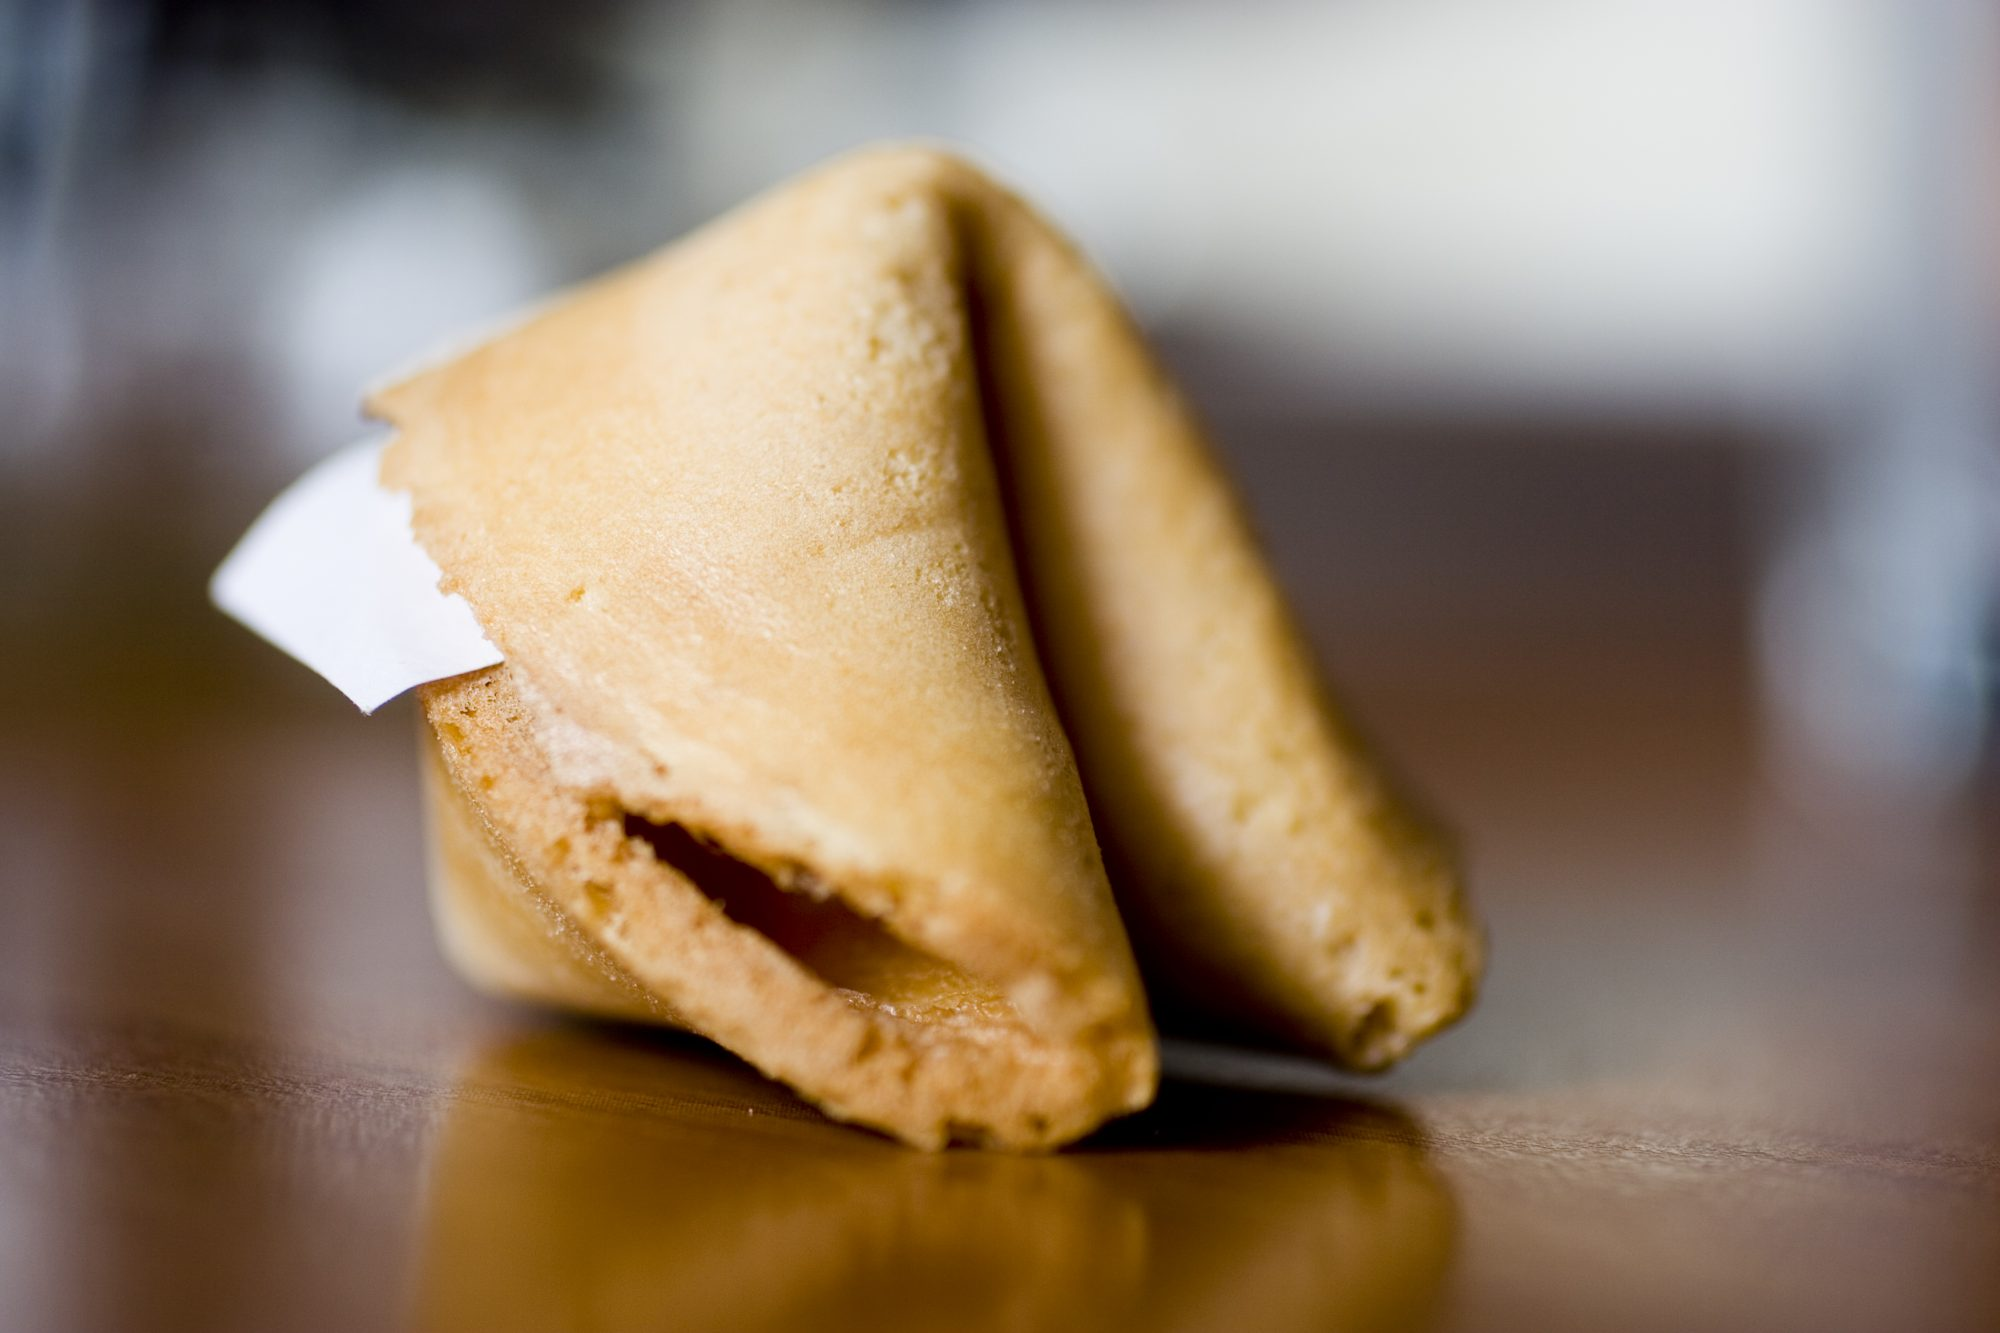 Asian Food: Fortune Cookie